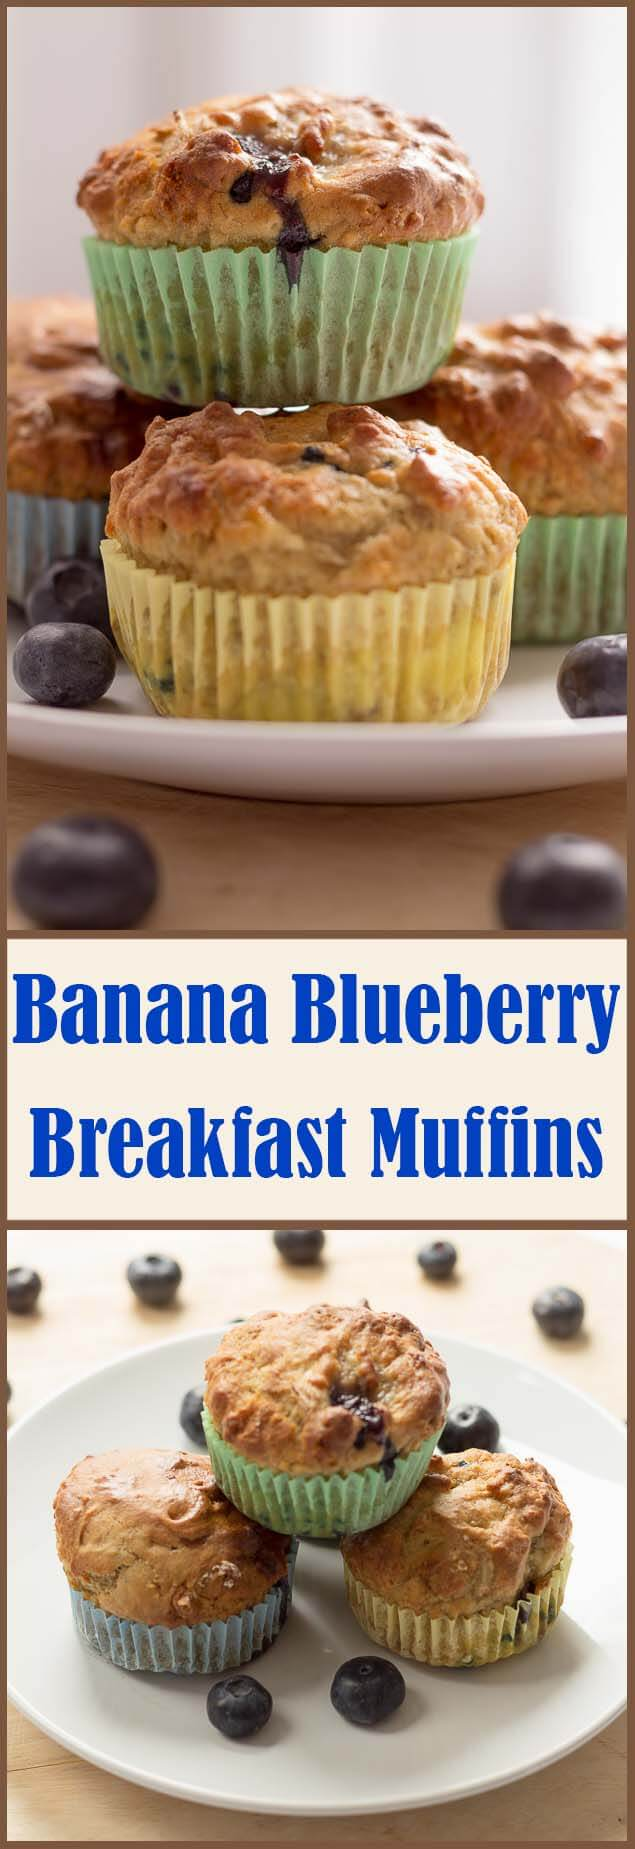 Banana blueberry breakfast muffins. Say hello and good morning to these healthier, delicious breakfast muffins. Make your start to the day a good one!